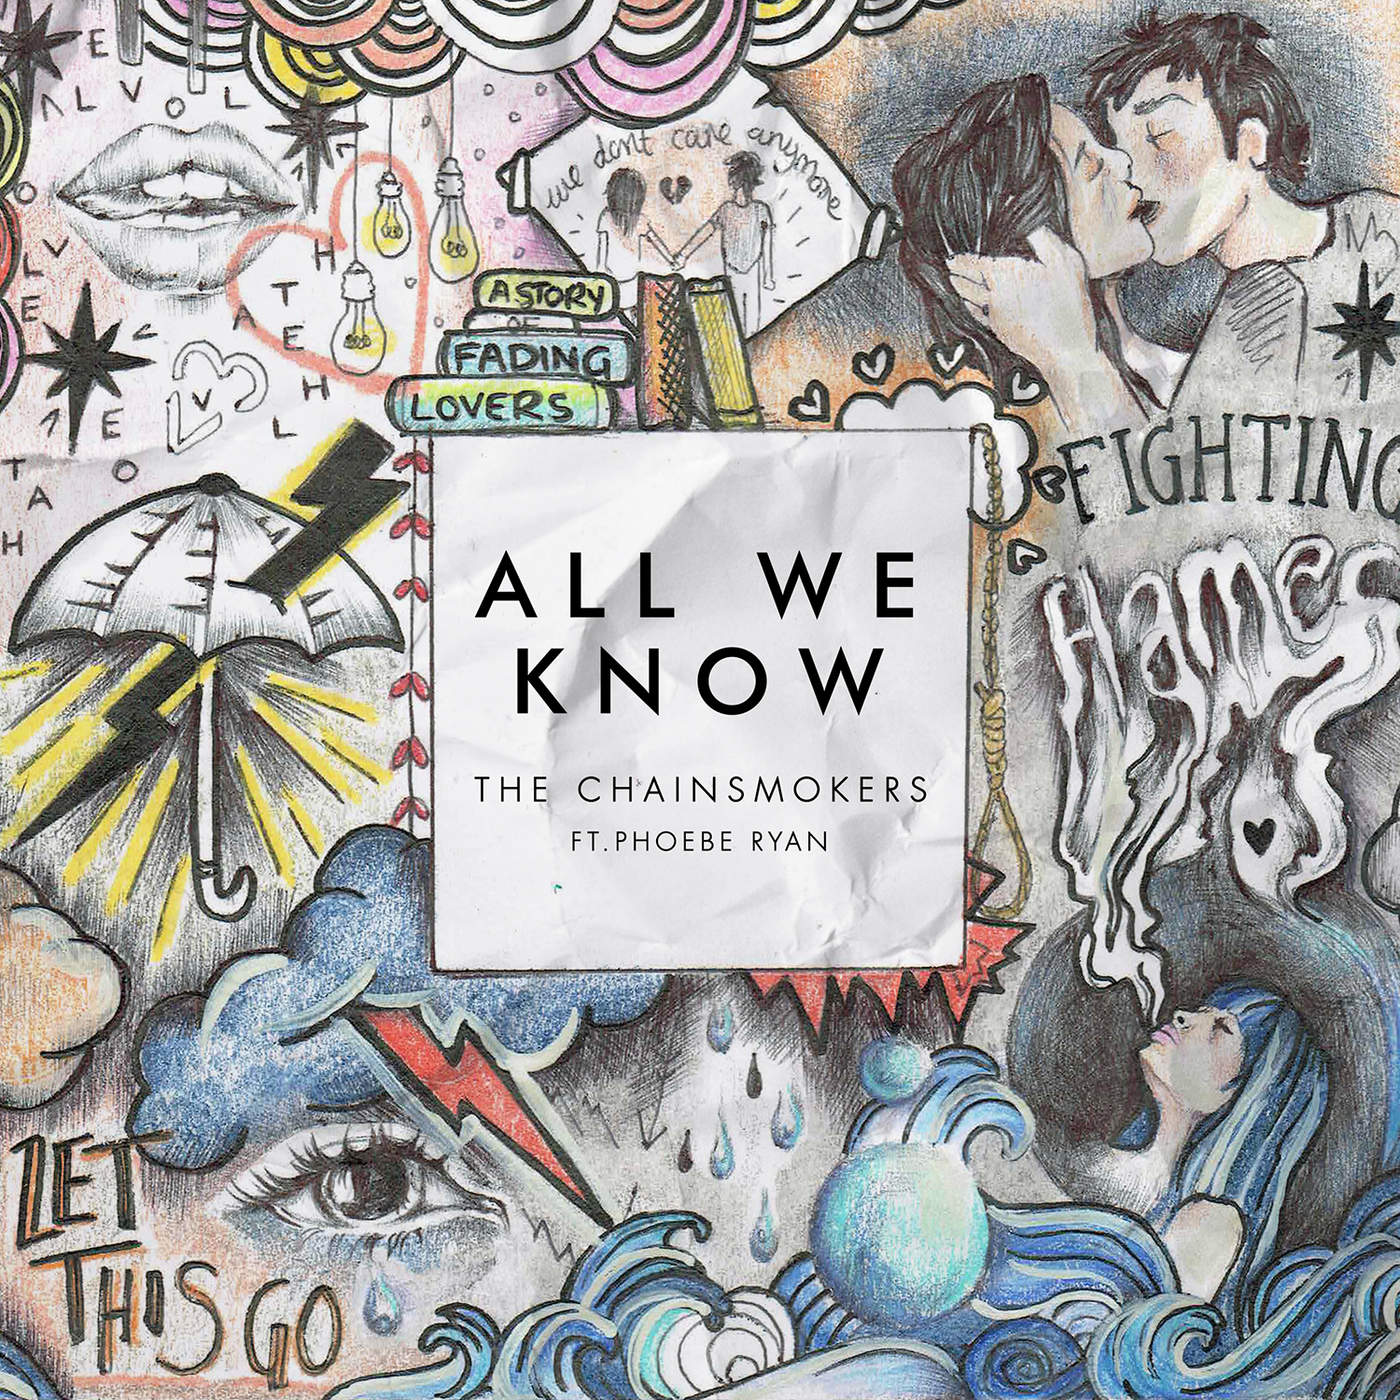 Baixar Música All We Know – The Chainsmokers ft. Phoebe Ryan